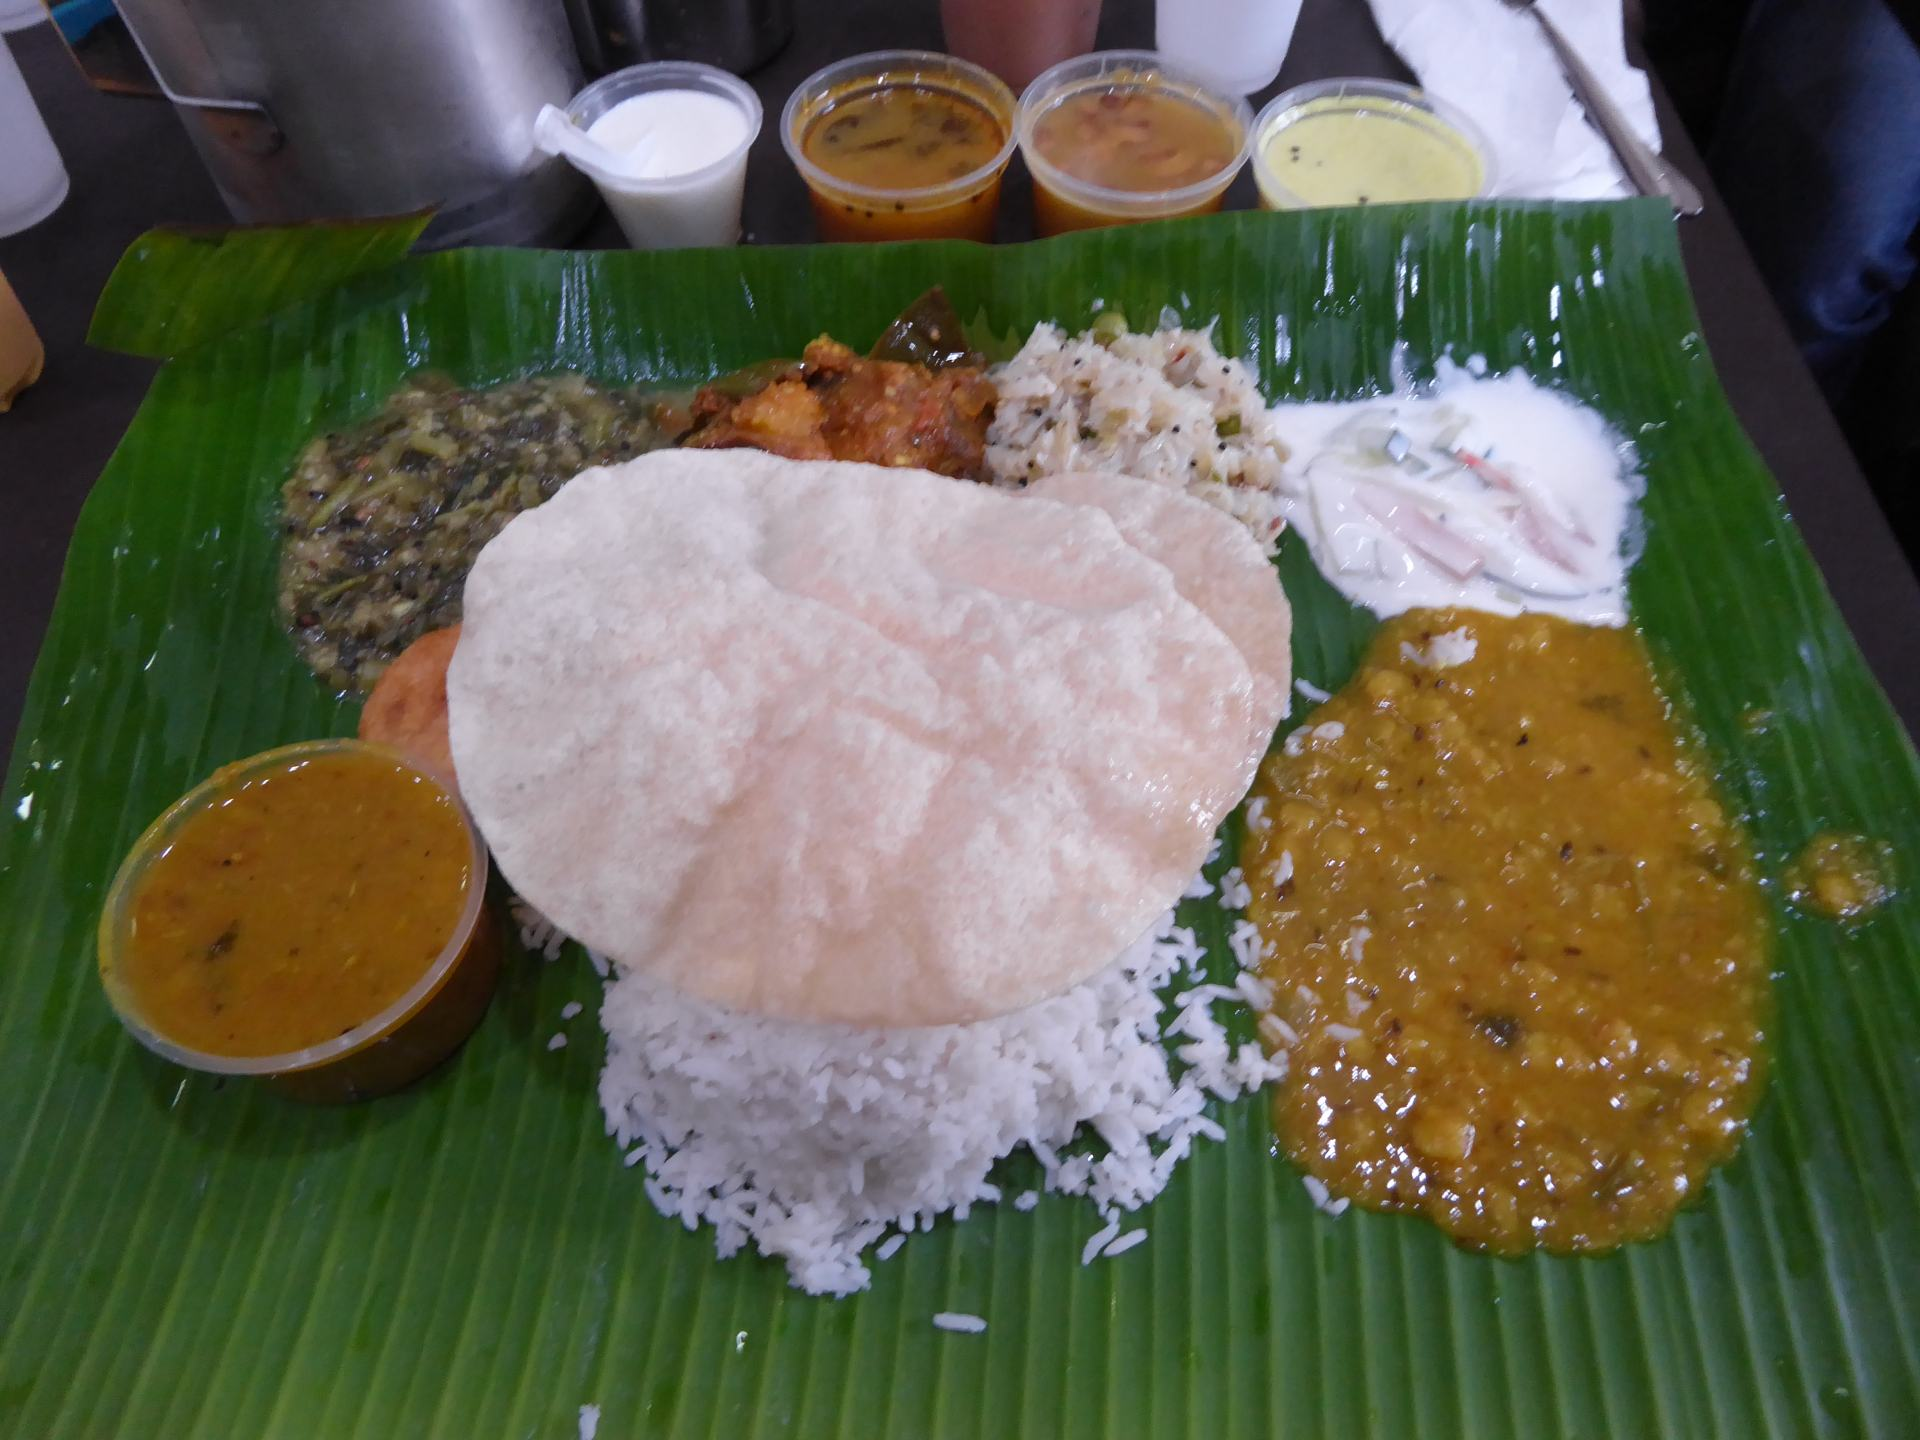 An example of Singapore Vegetarian Food - a rice meal at Komala Vilas on Serangoon Road. Including several curry and dips in pots as well as poppadoms